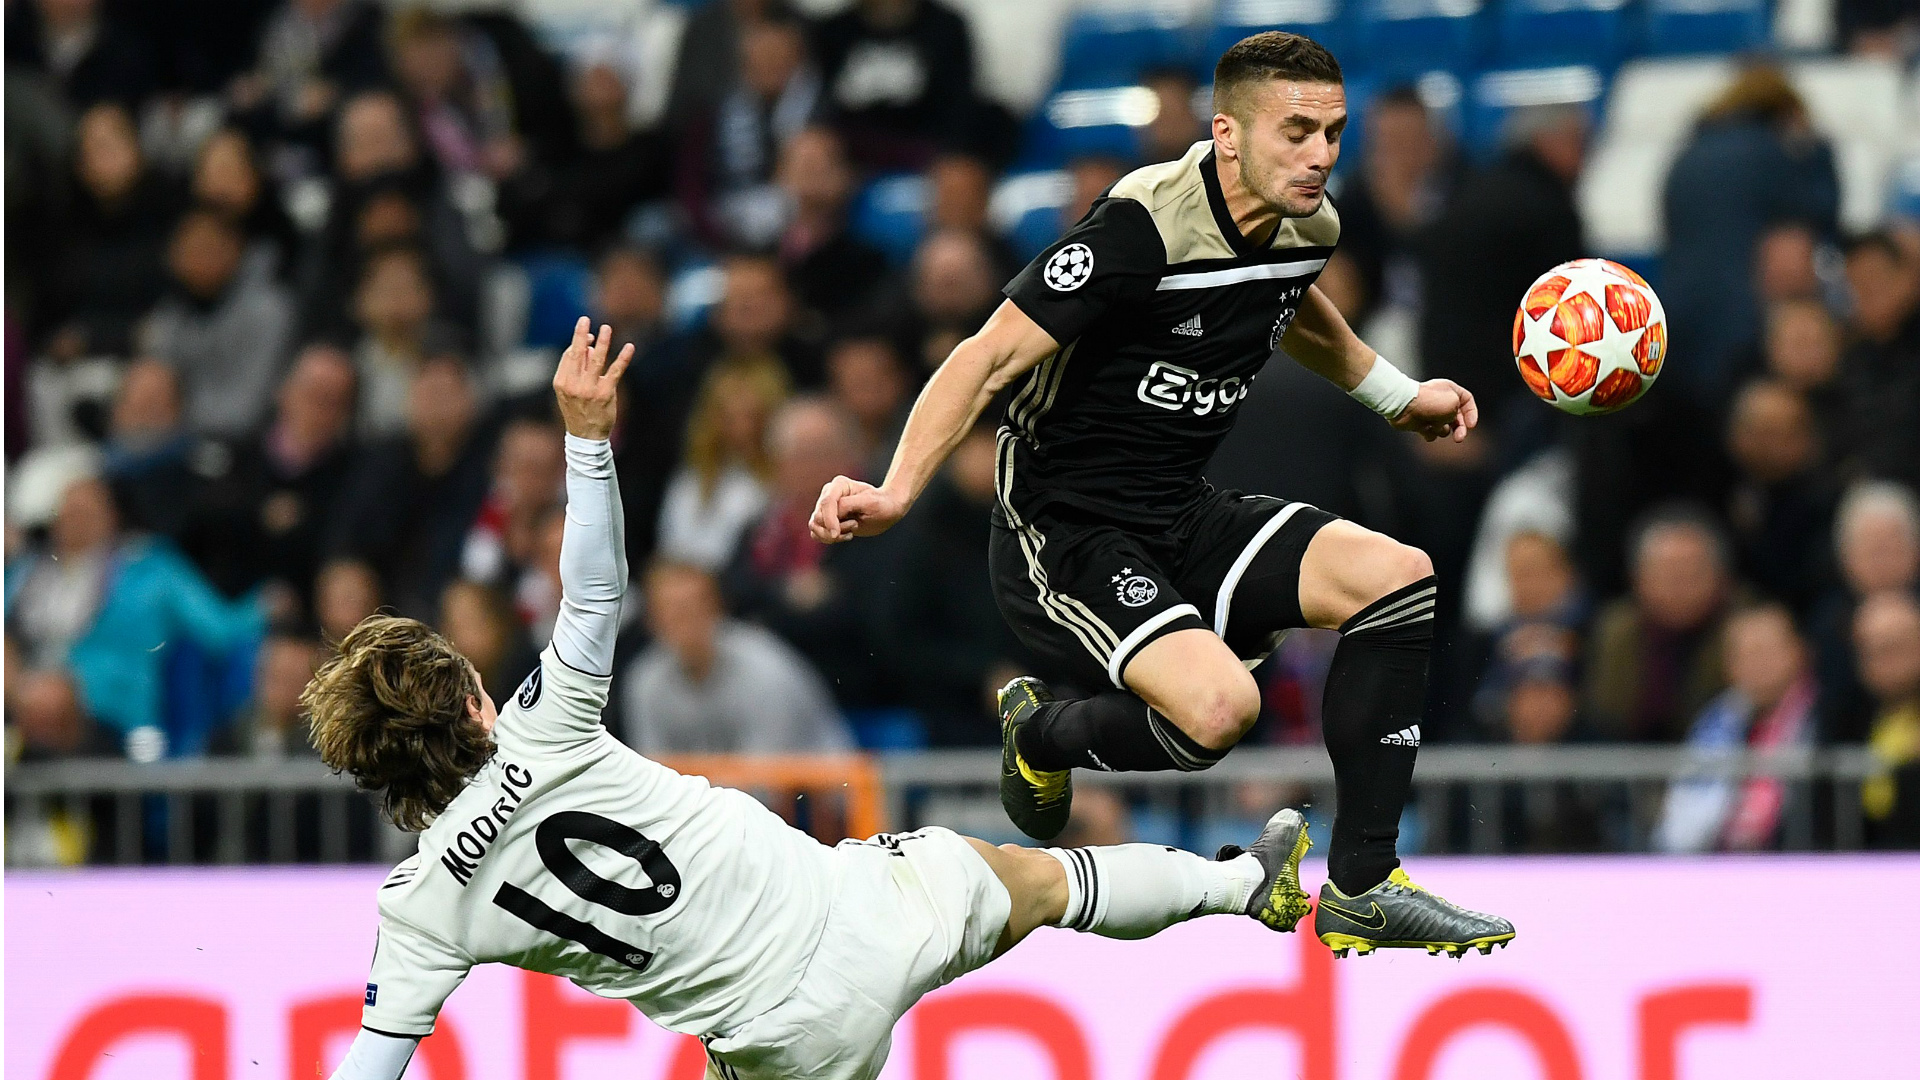 Dusan Tadic: 2018-19 UEFA Champions League Squad of the Season - Forwards